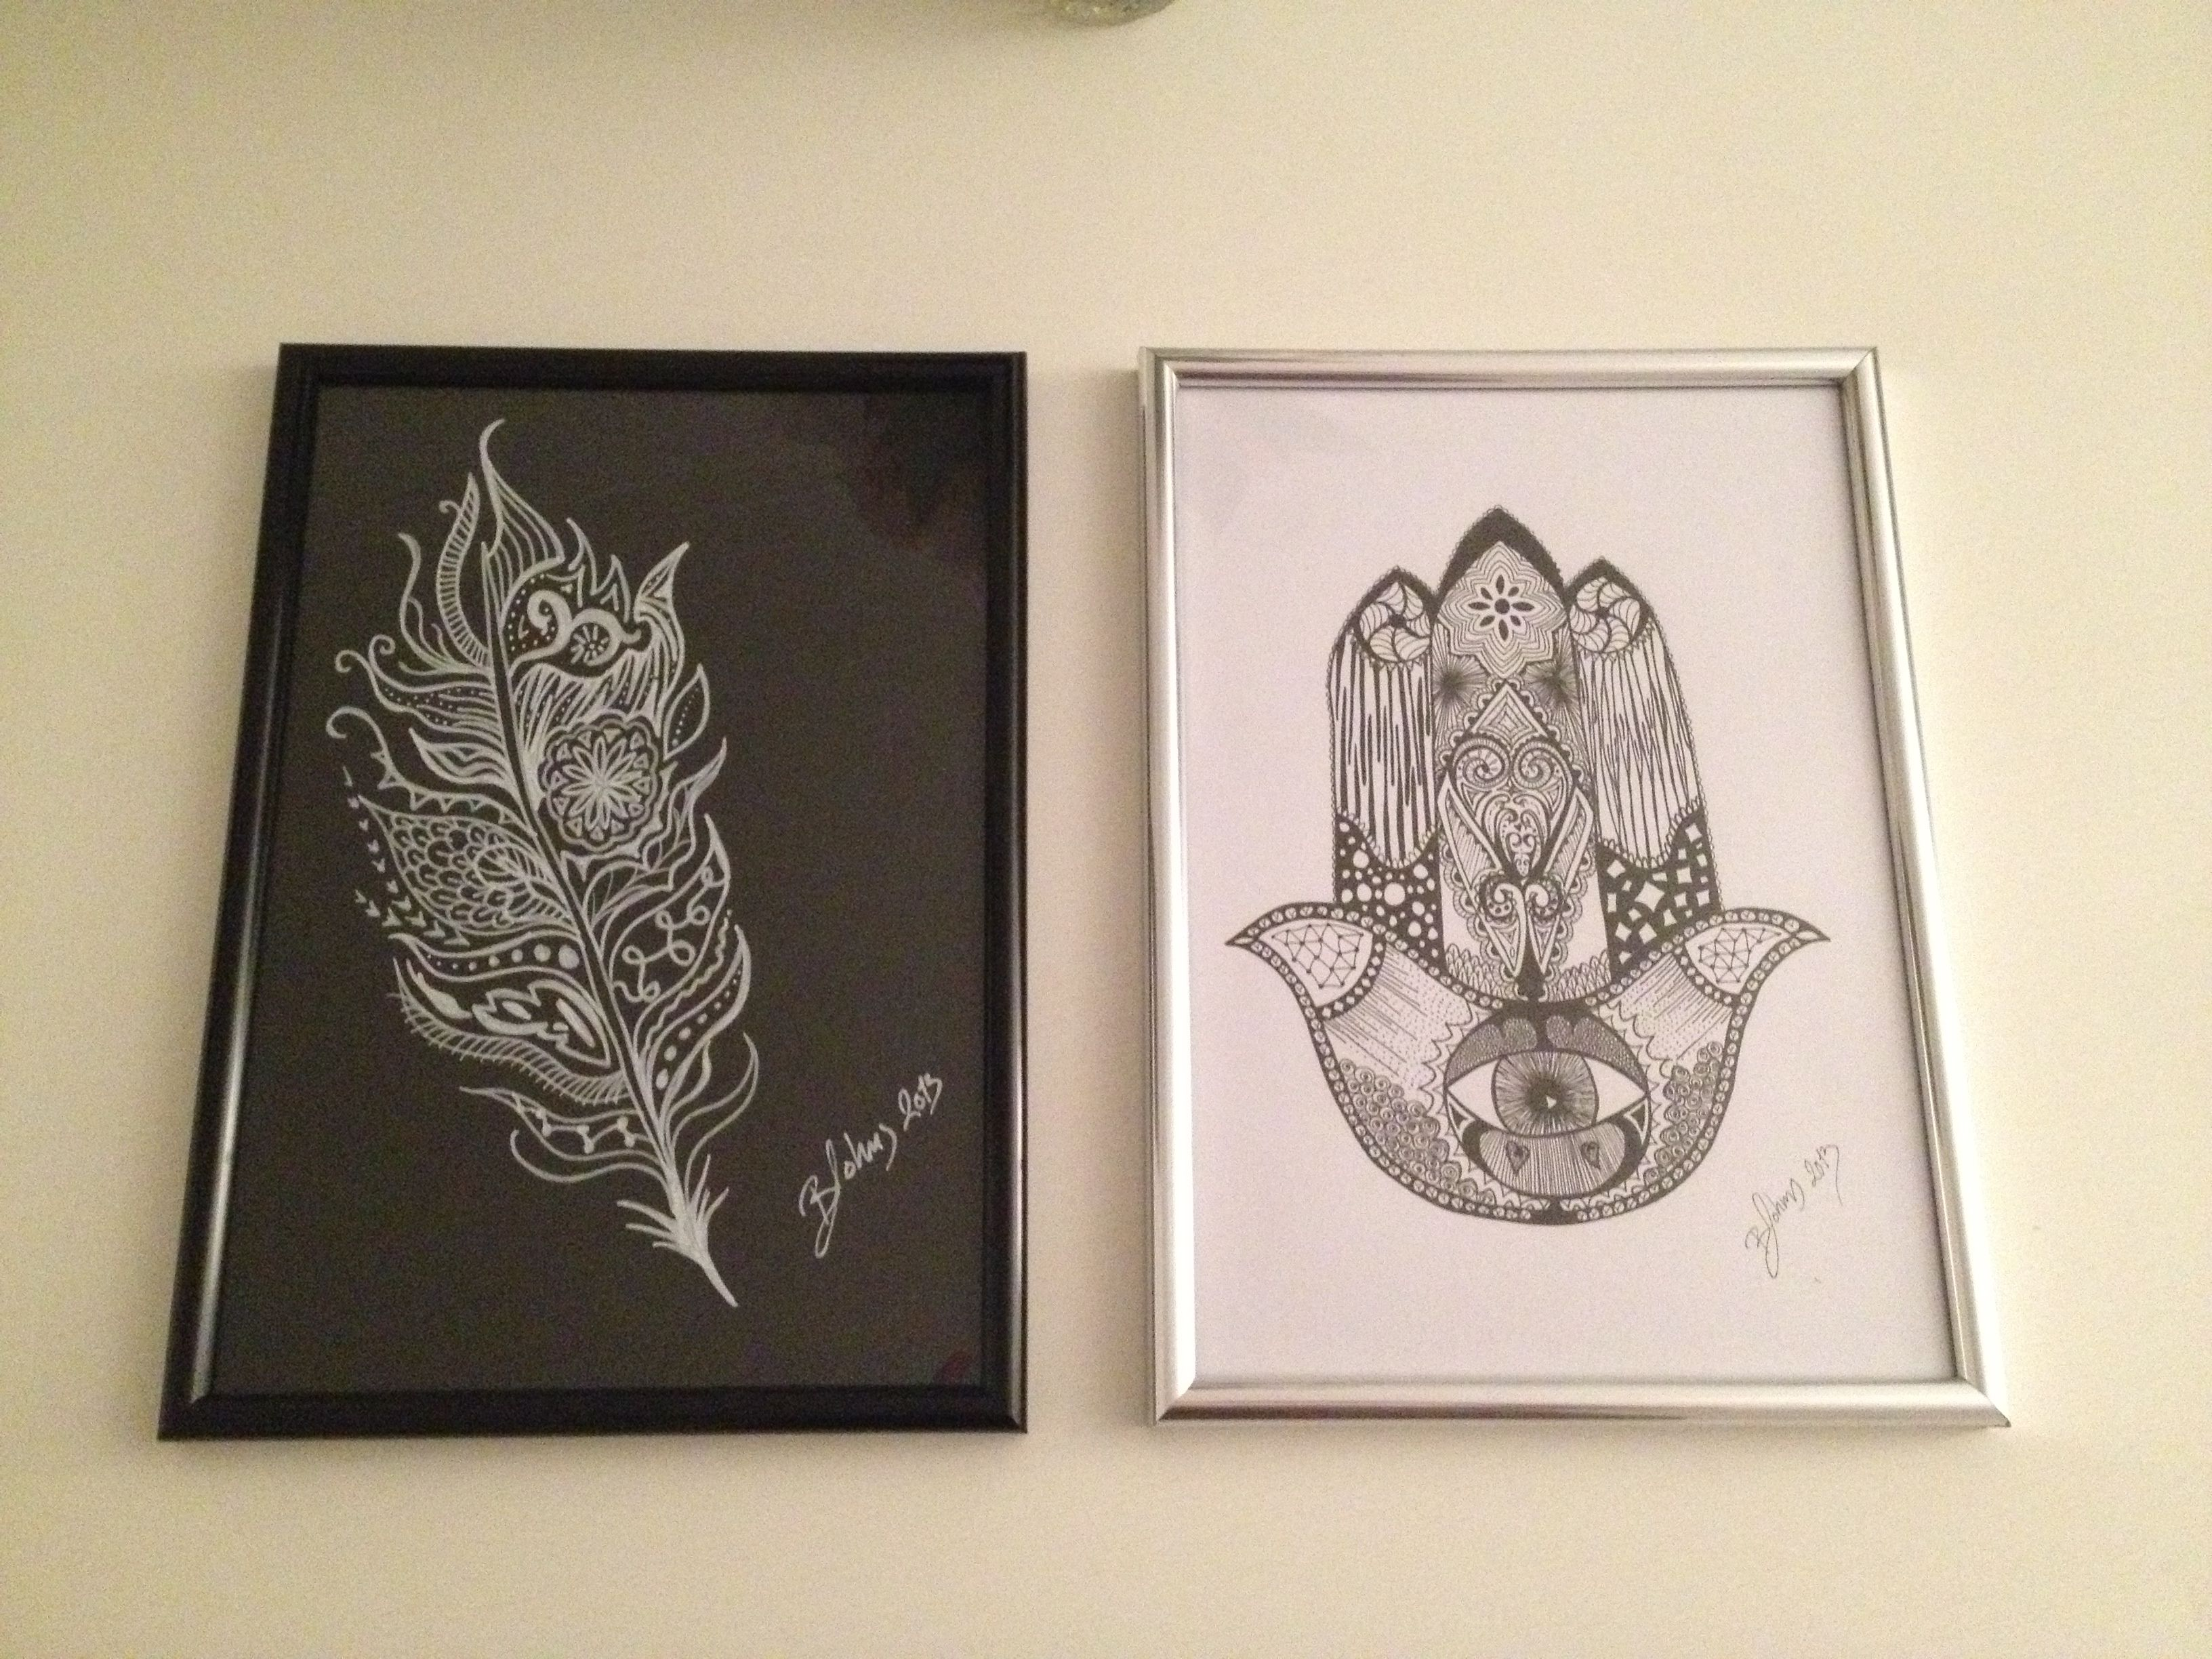 Made some new art for our home this evening